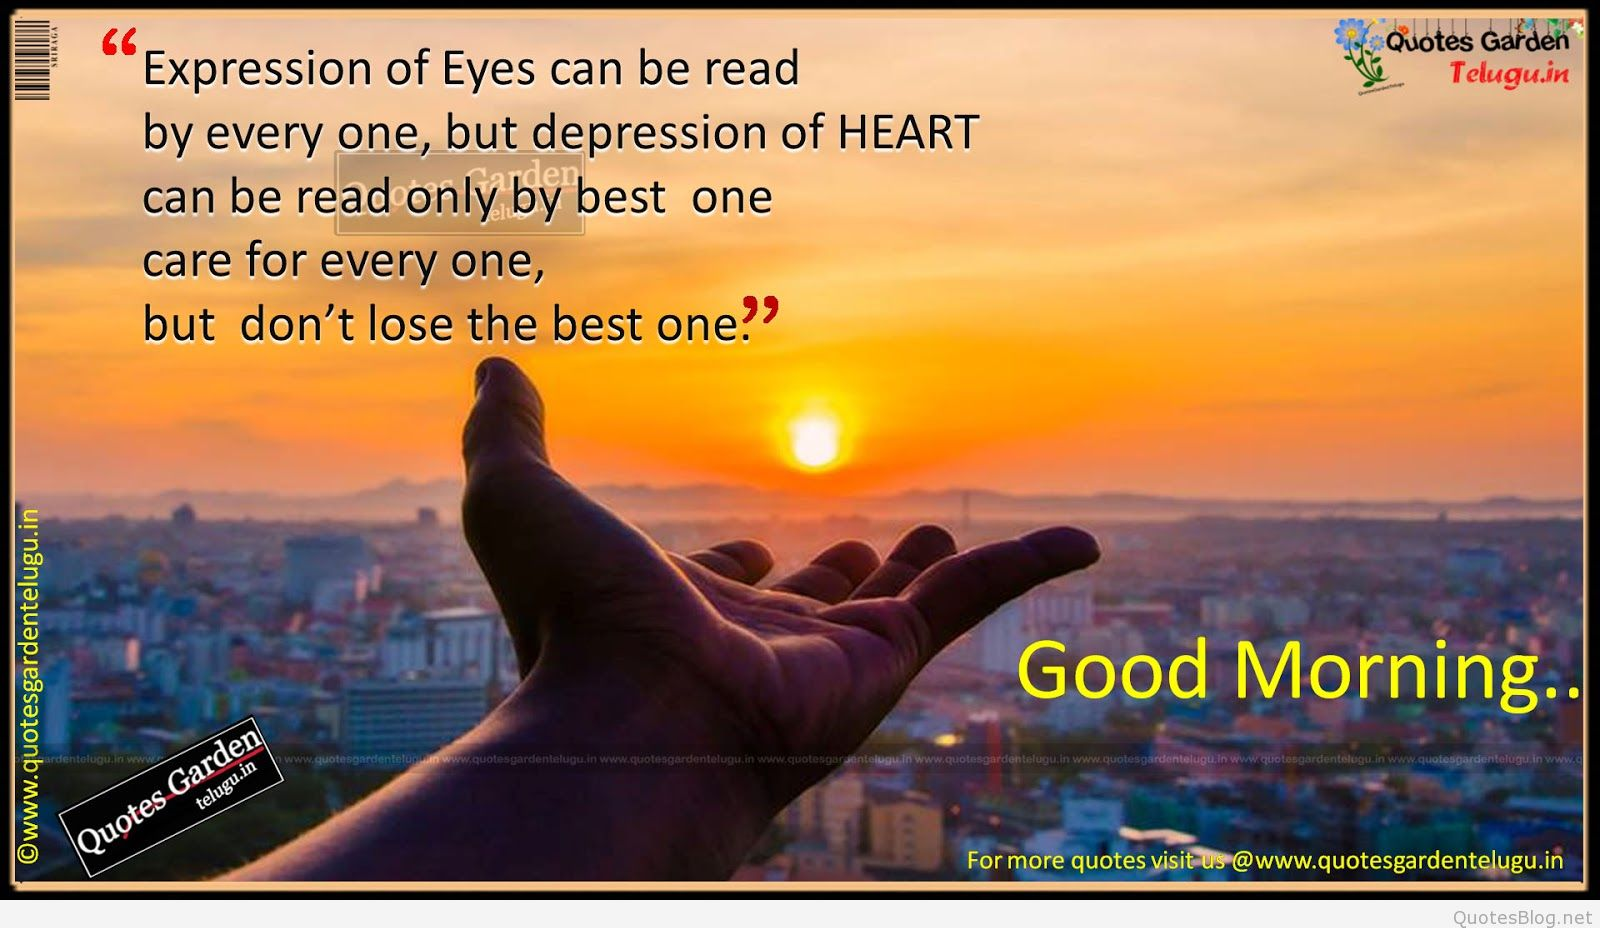 Good Morning Images With Quotes For Whatsapp